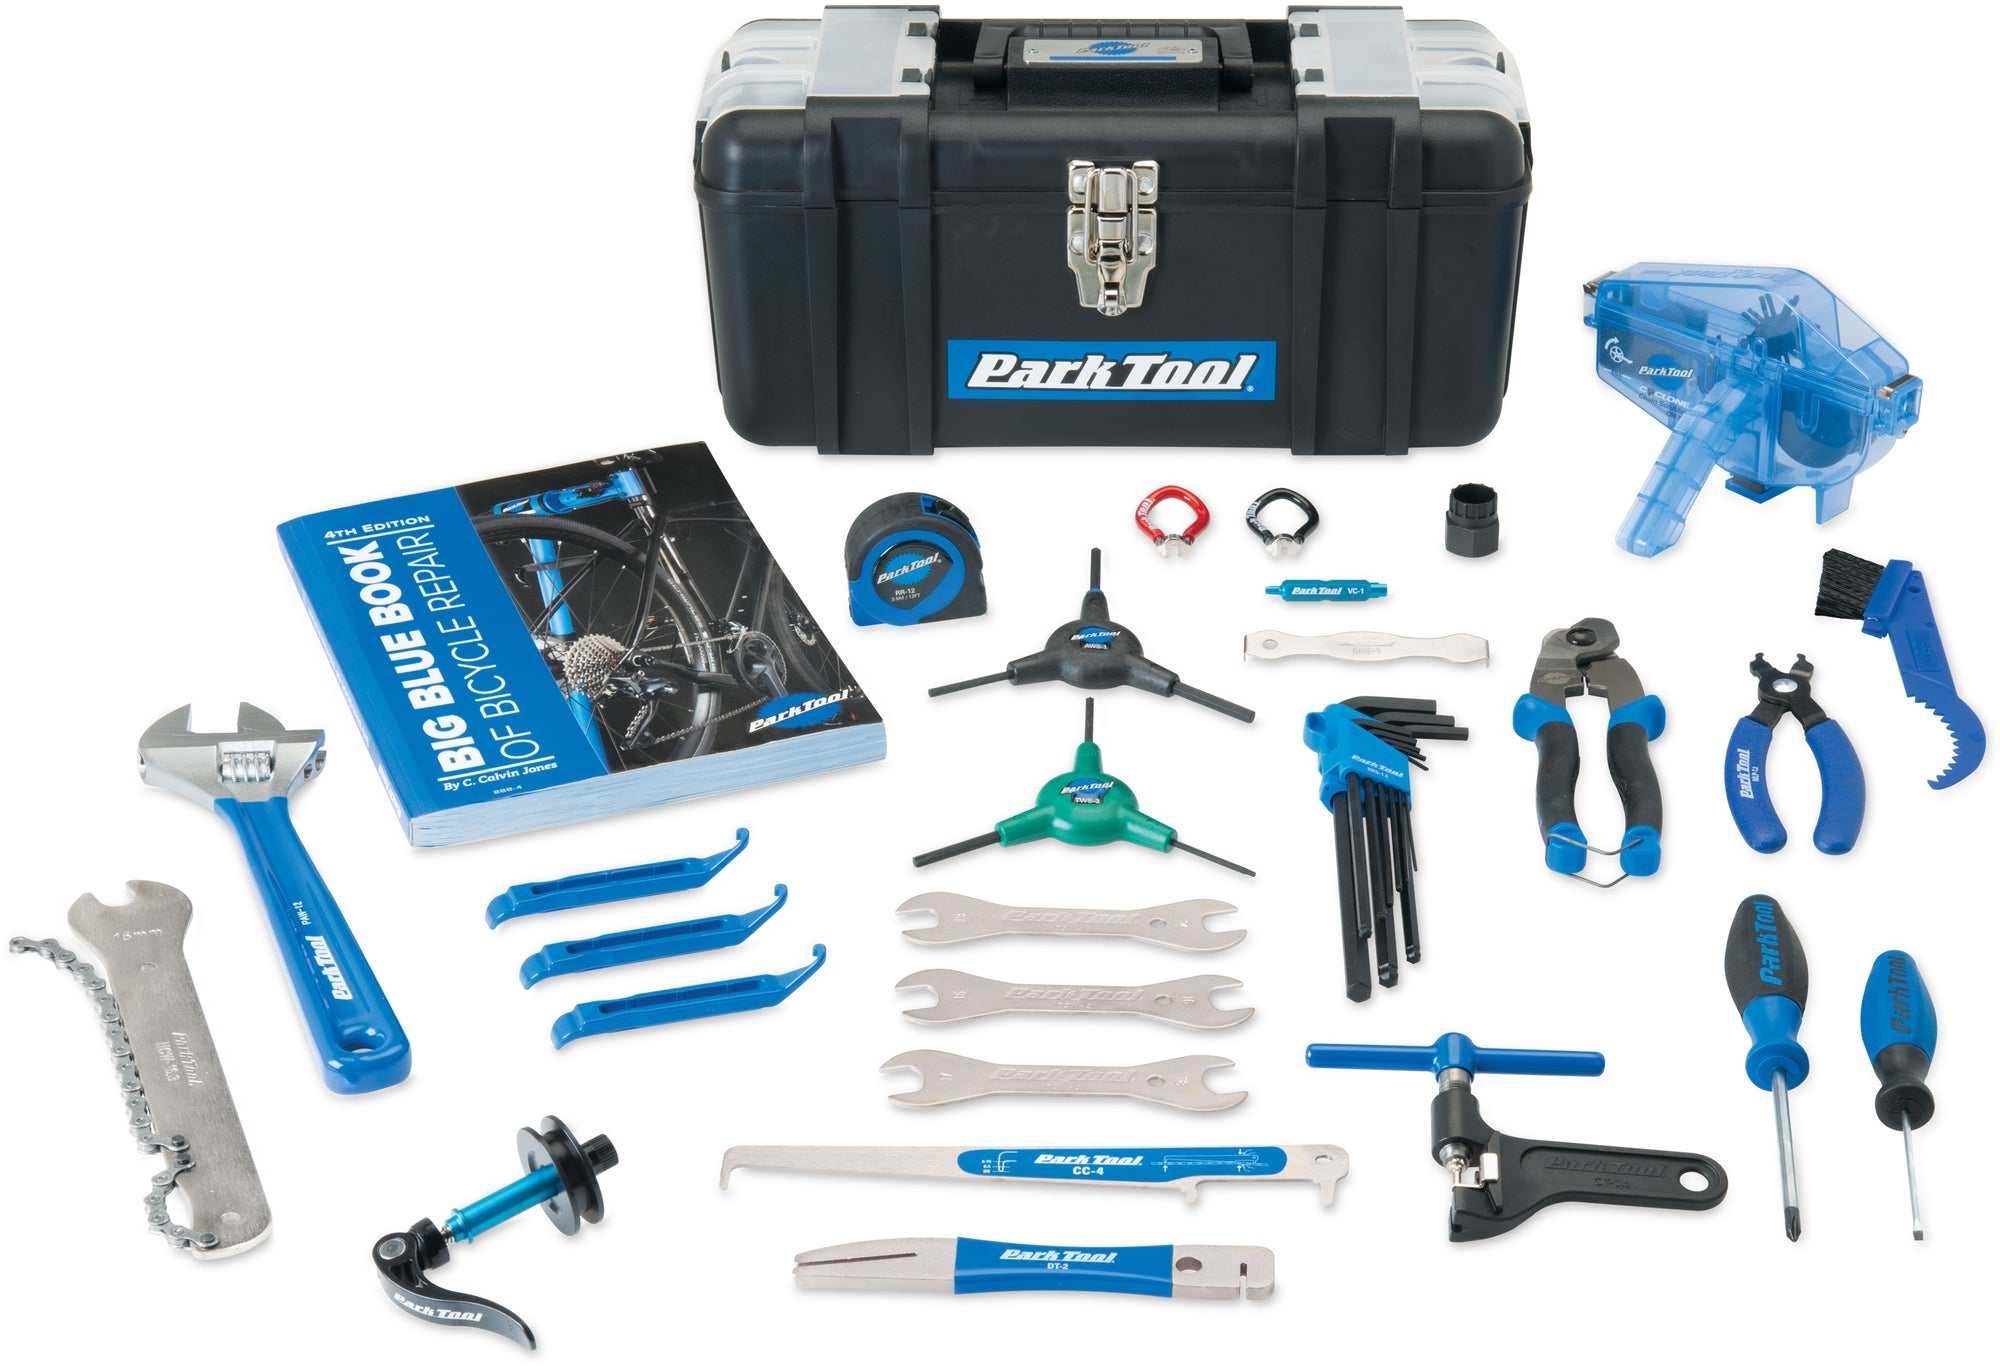 Park tool AK5 - Advanced Mechanic tool kit